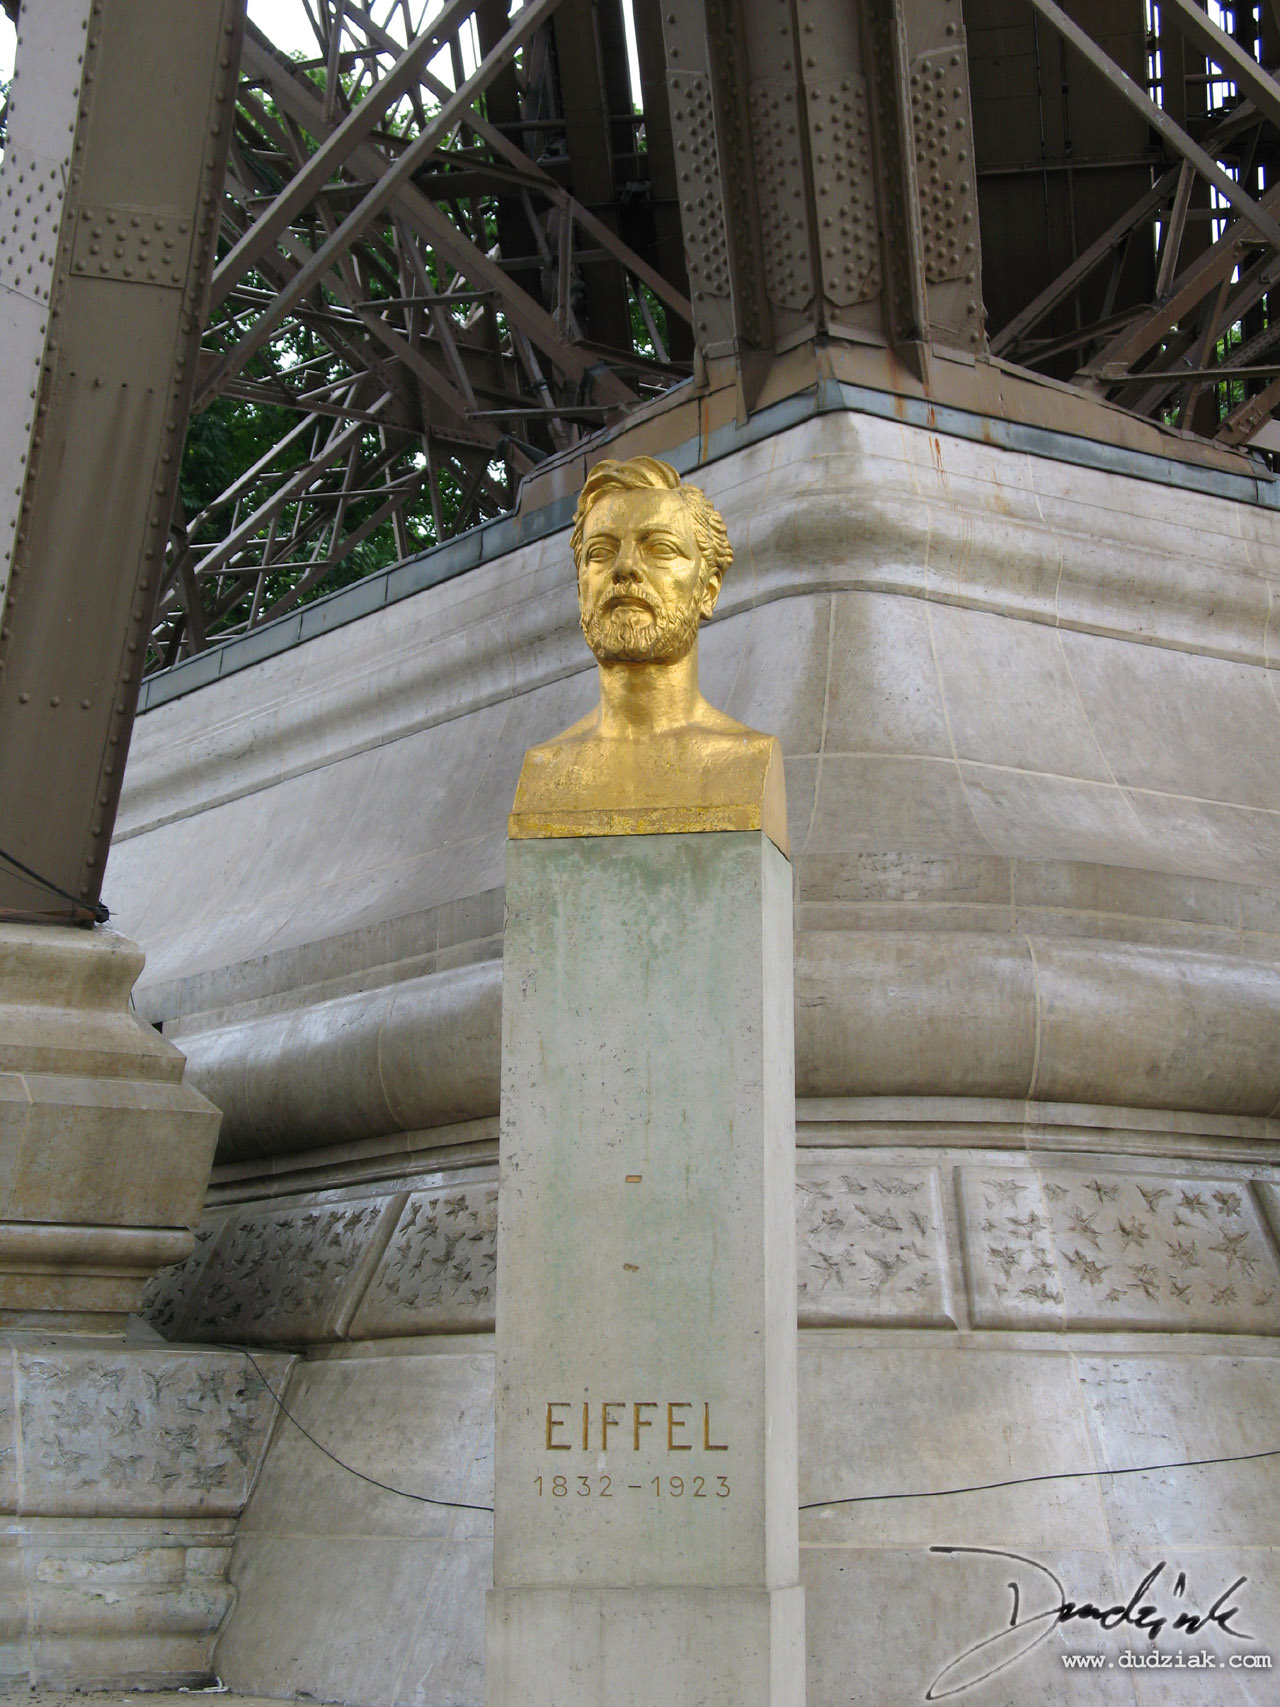 Eiffel Tower,  Pier,  Paris France,  Bust,  Gustave Eiffel